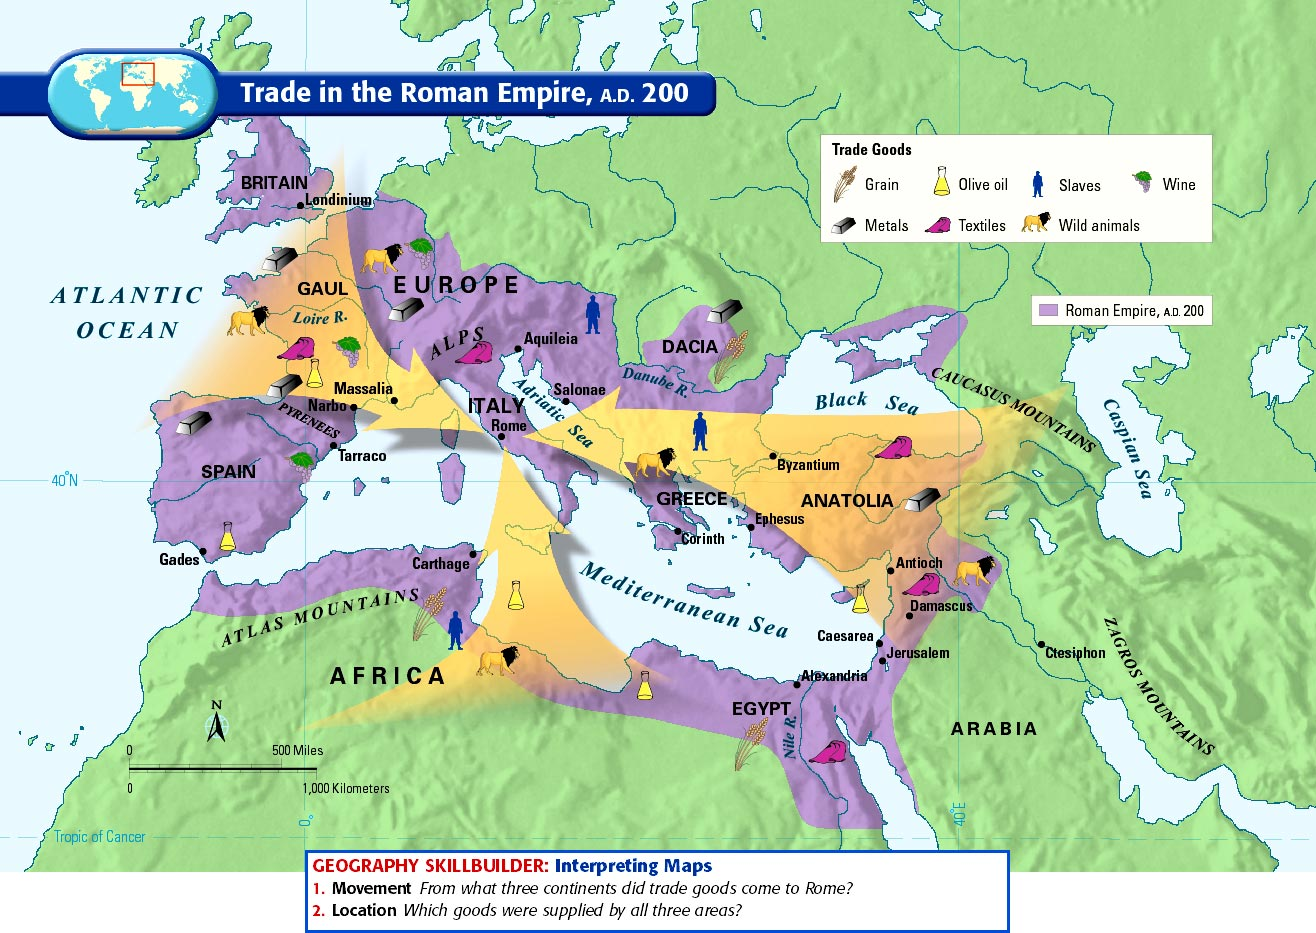 Roman Empire Timeline Map Roman Empire Trade Map